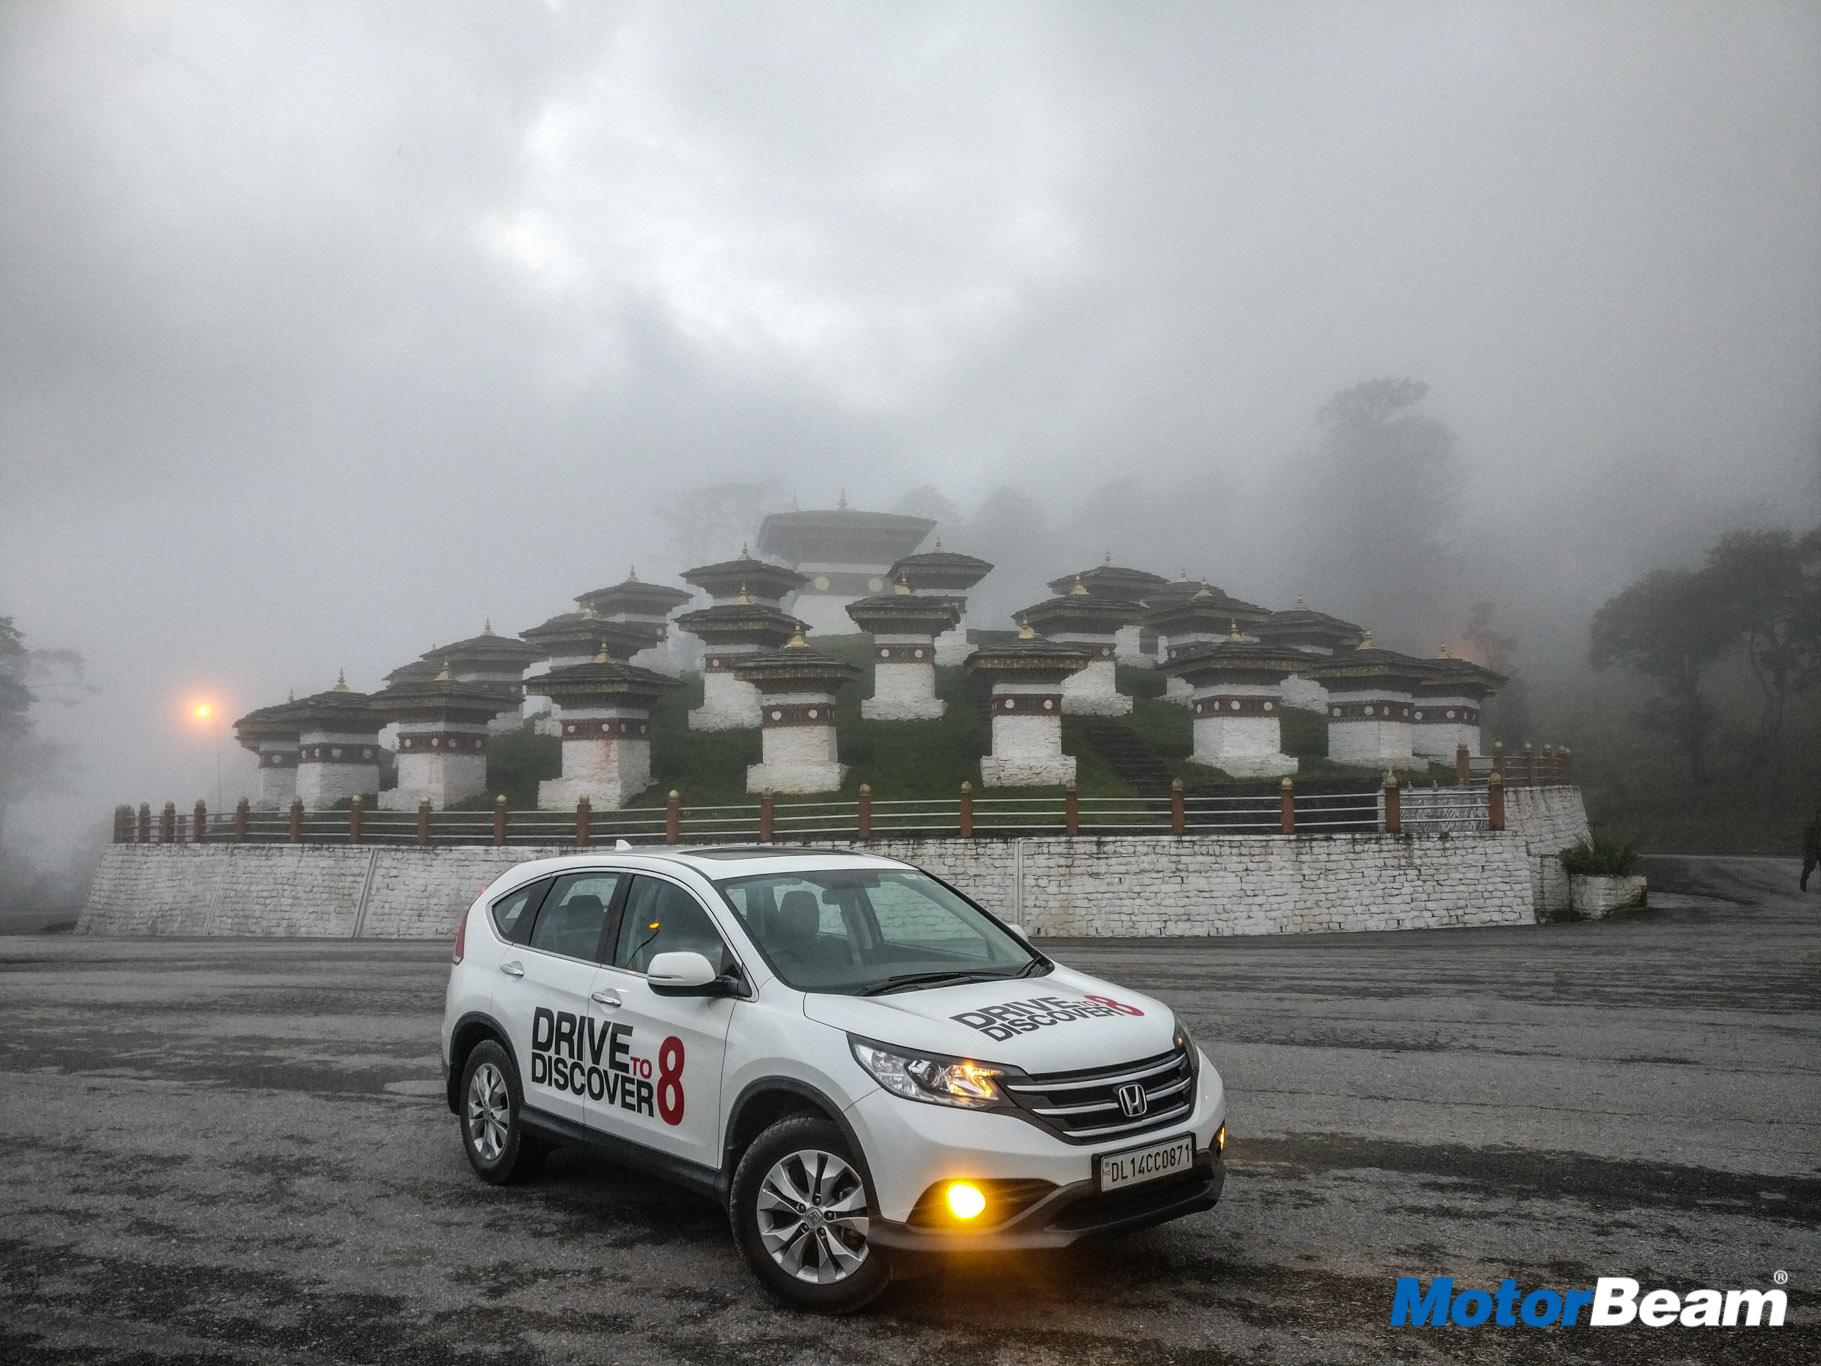 Honda Drive To Discover 8 Travelogue